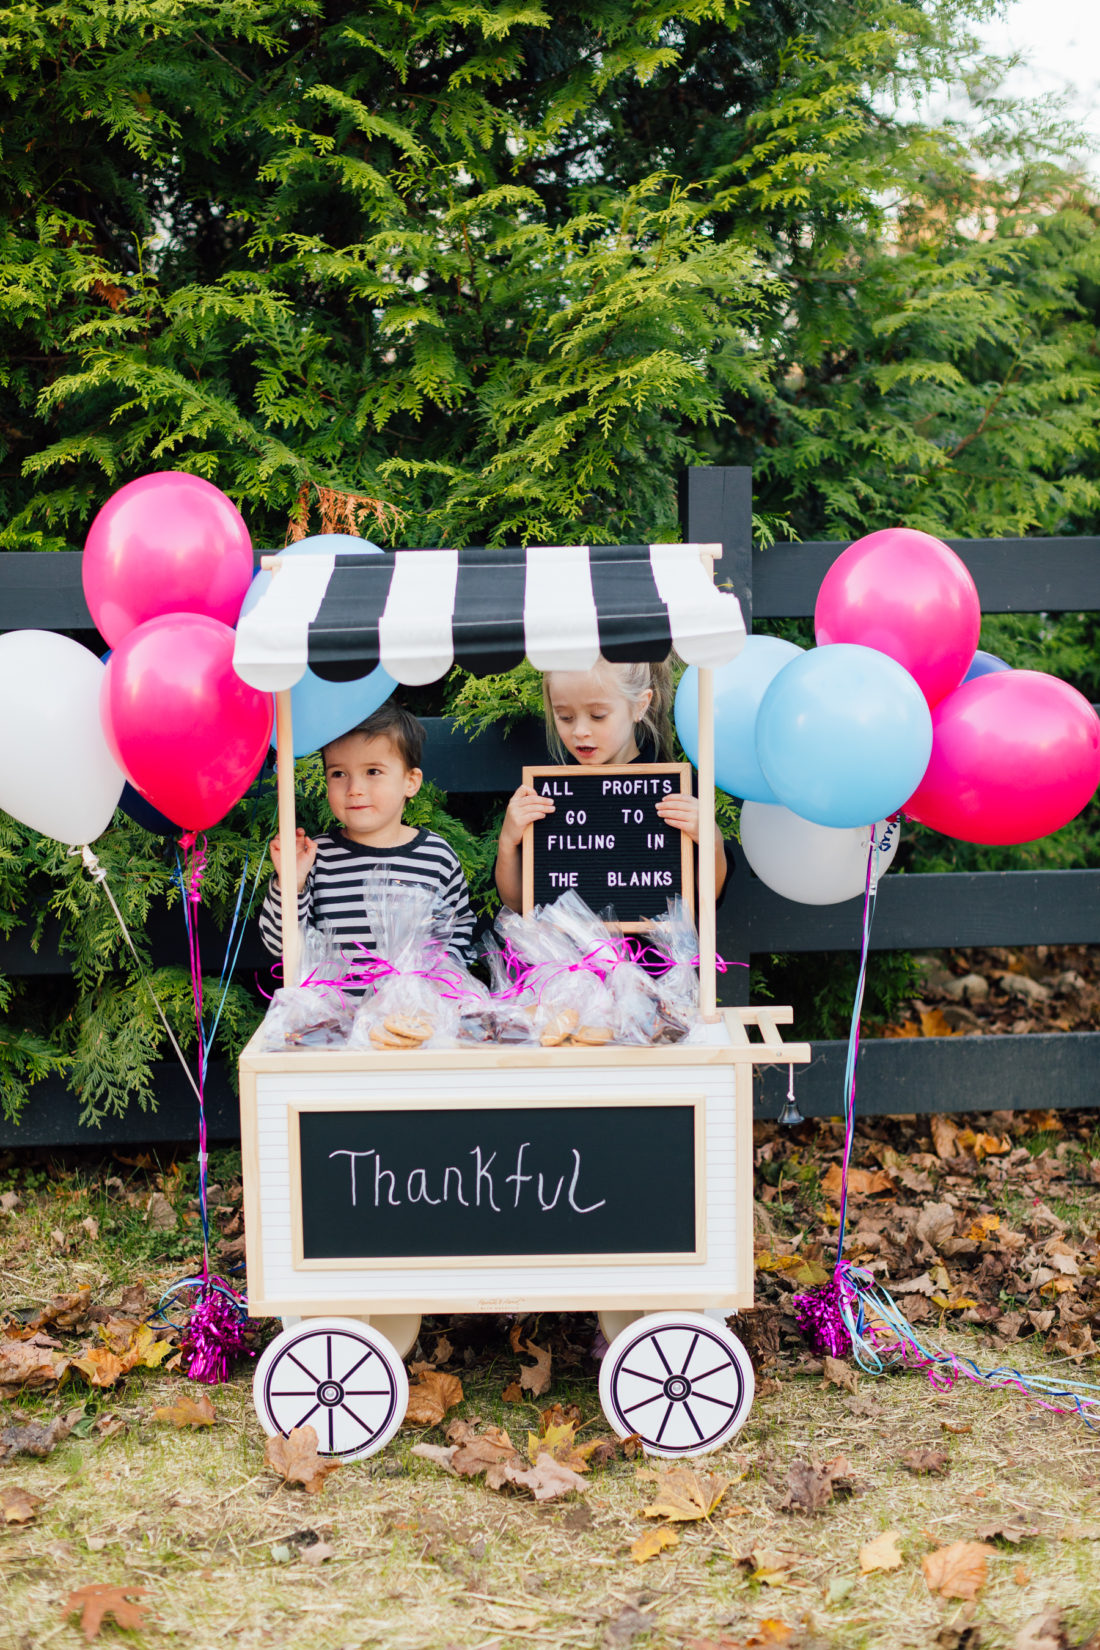 Marlowe and Major Martino sell baked goods to raise money to benefit nonprofit organization Filling in the Blanks